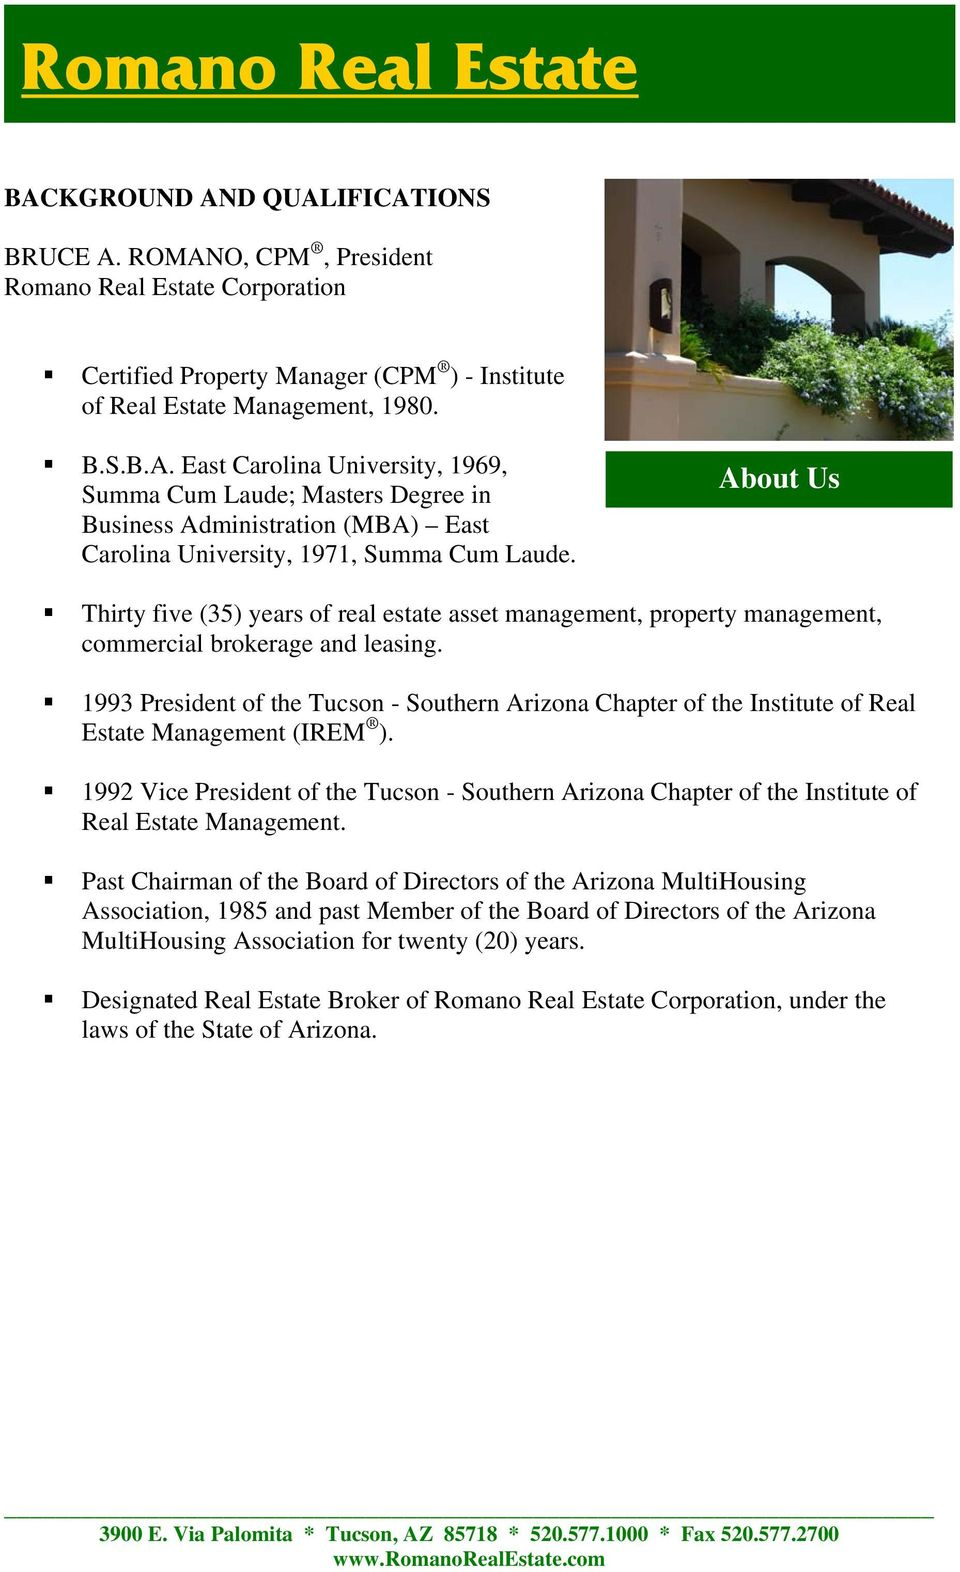 1993 President of the Tucson - Southern Arizona Chapter of the Institute of Real Estate Management (IREM ).